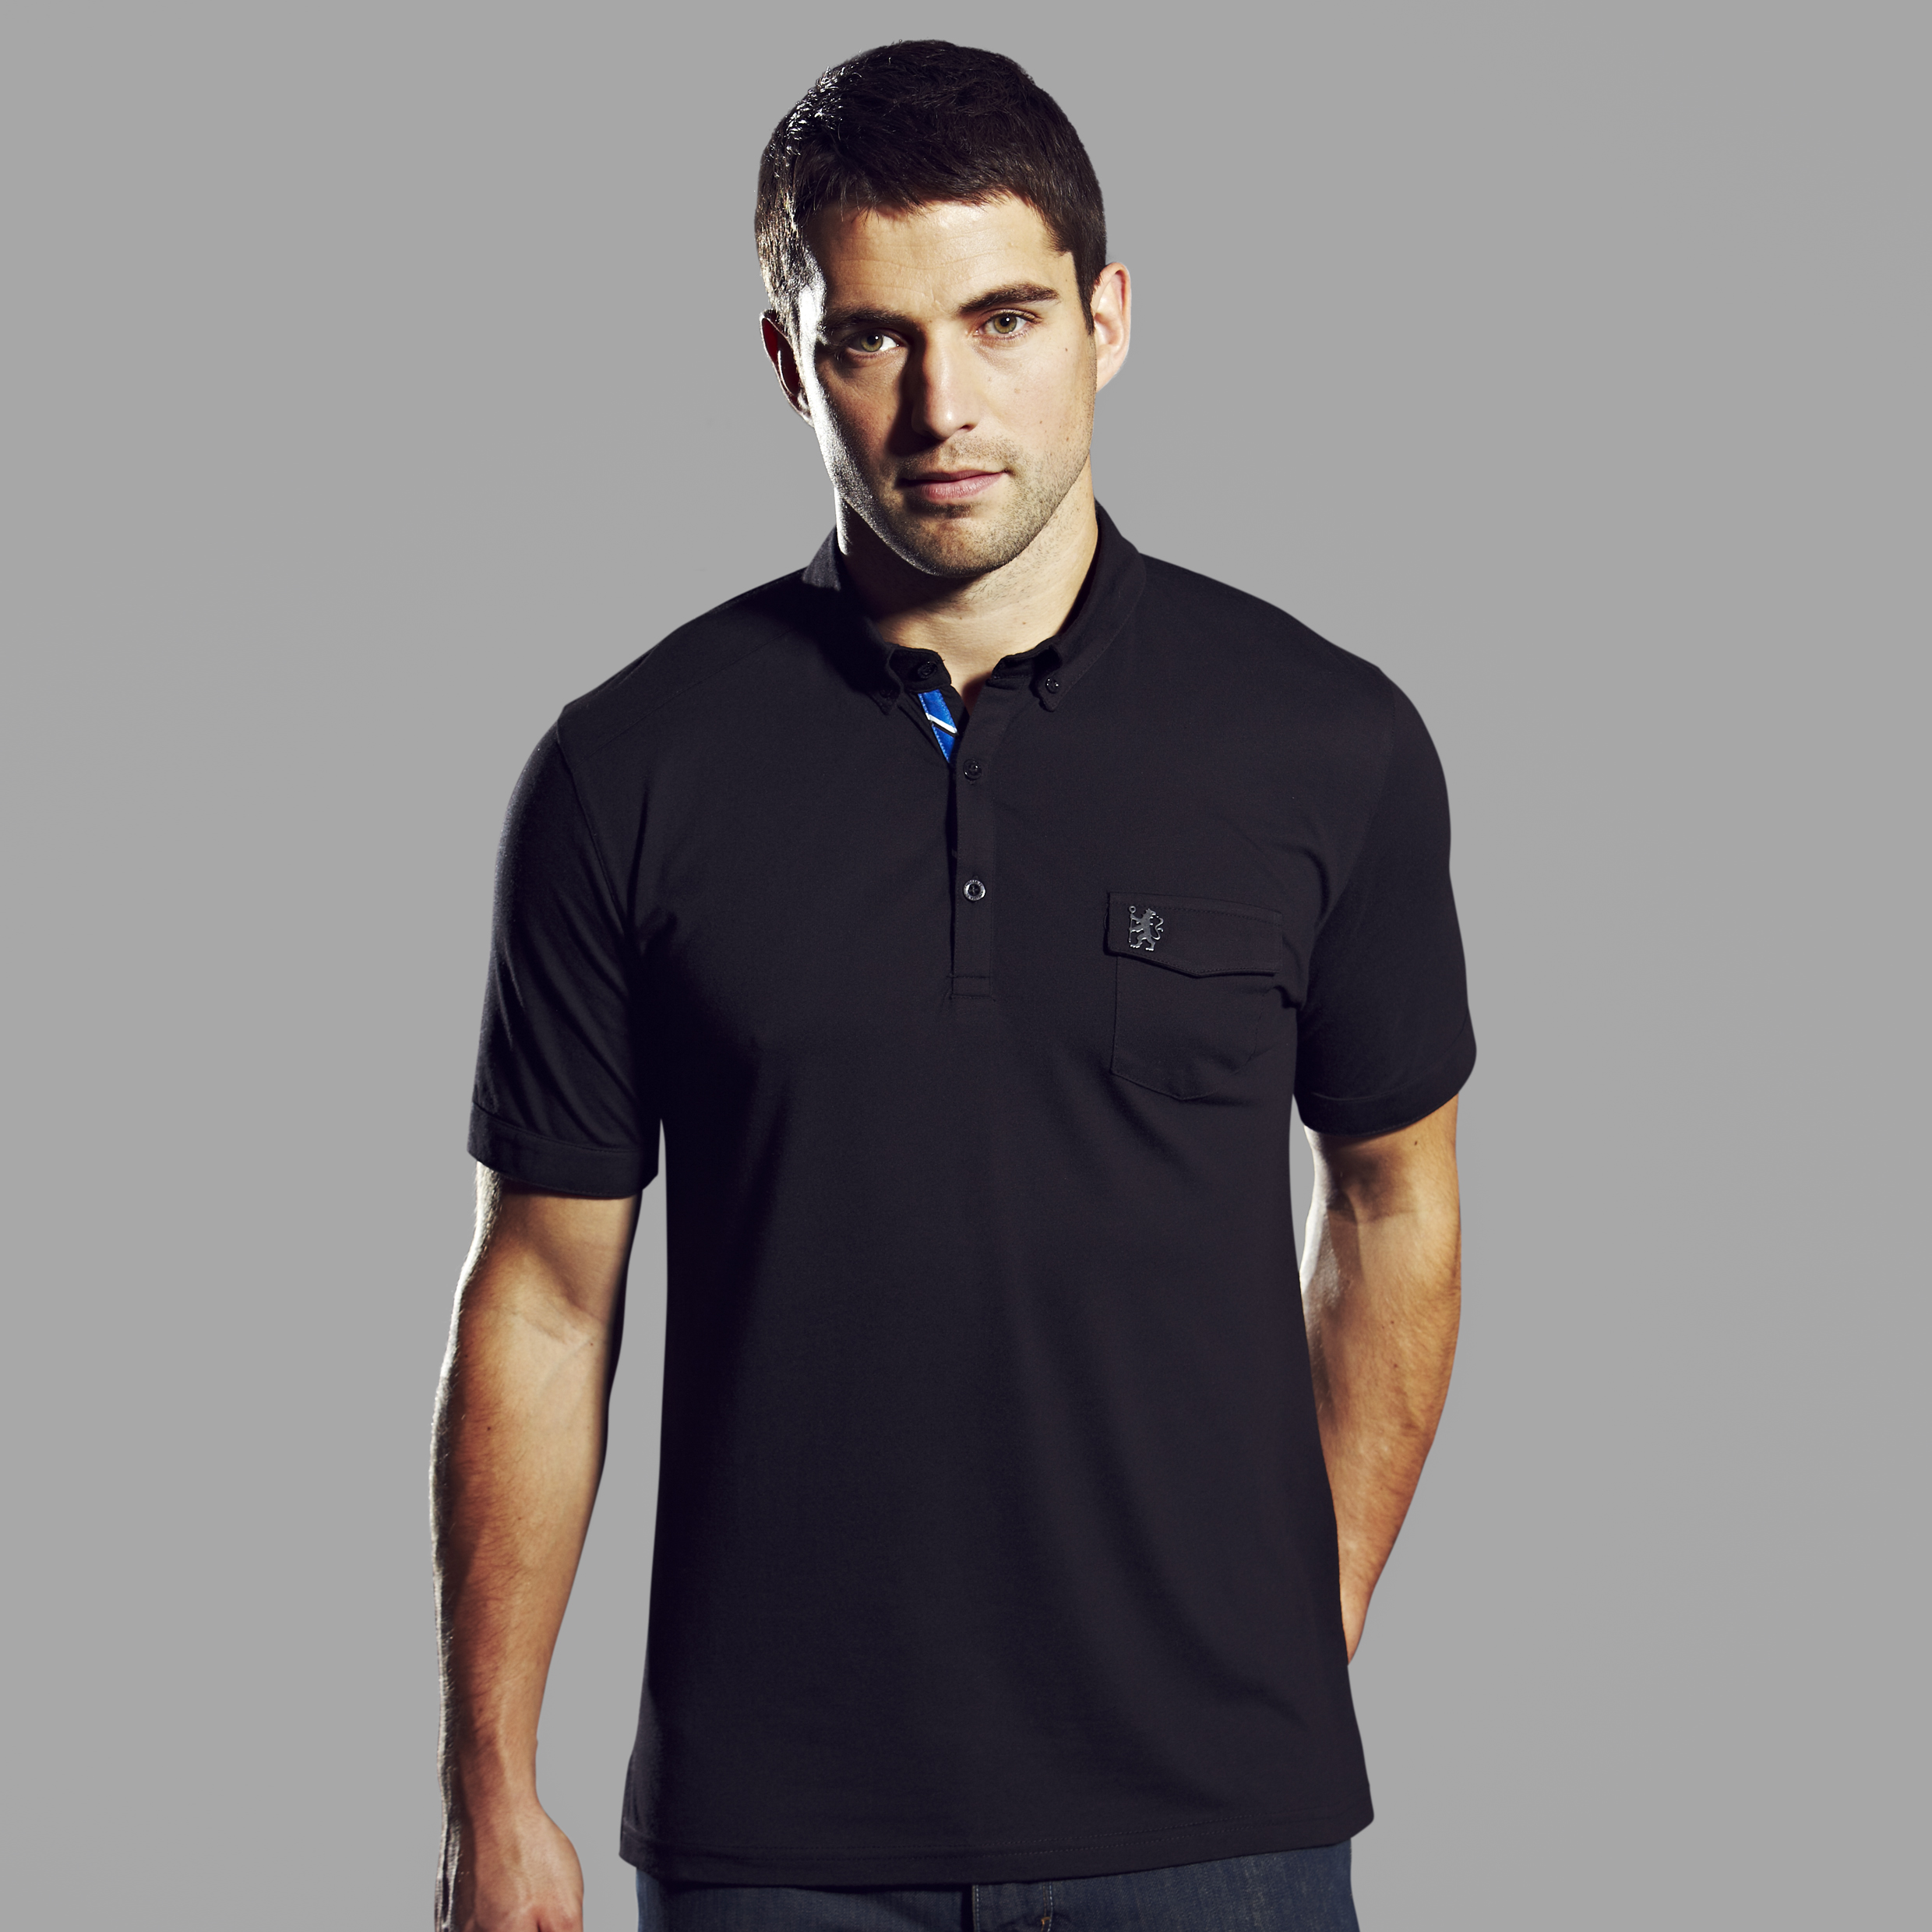 Chelsea Collection Pocket Polo - Mens Black